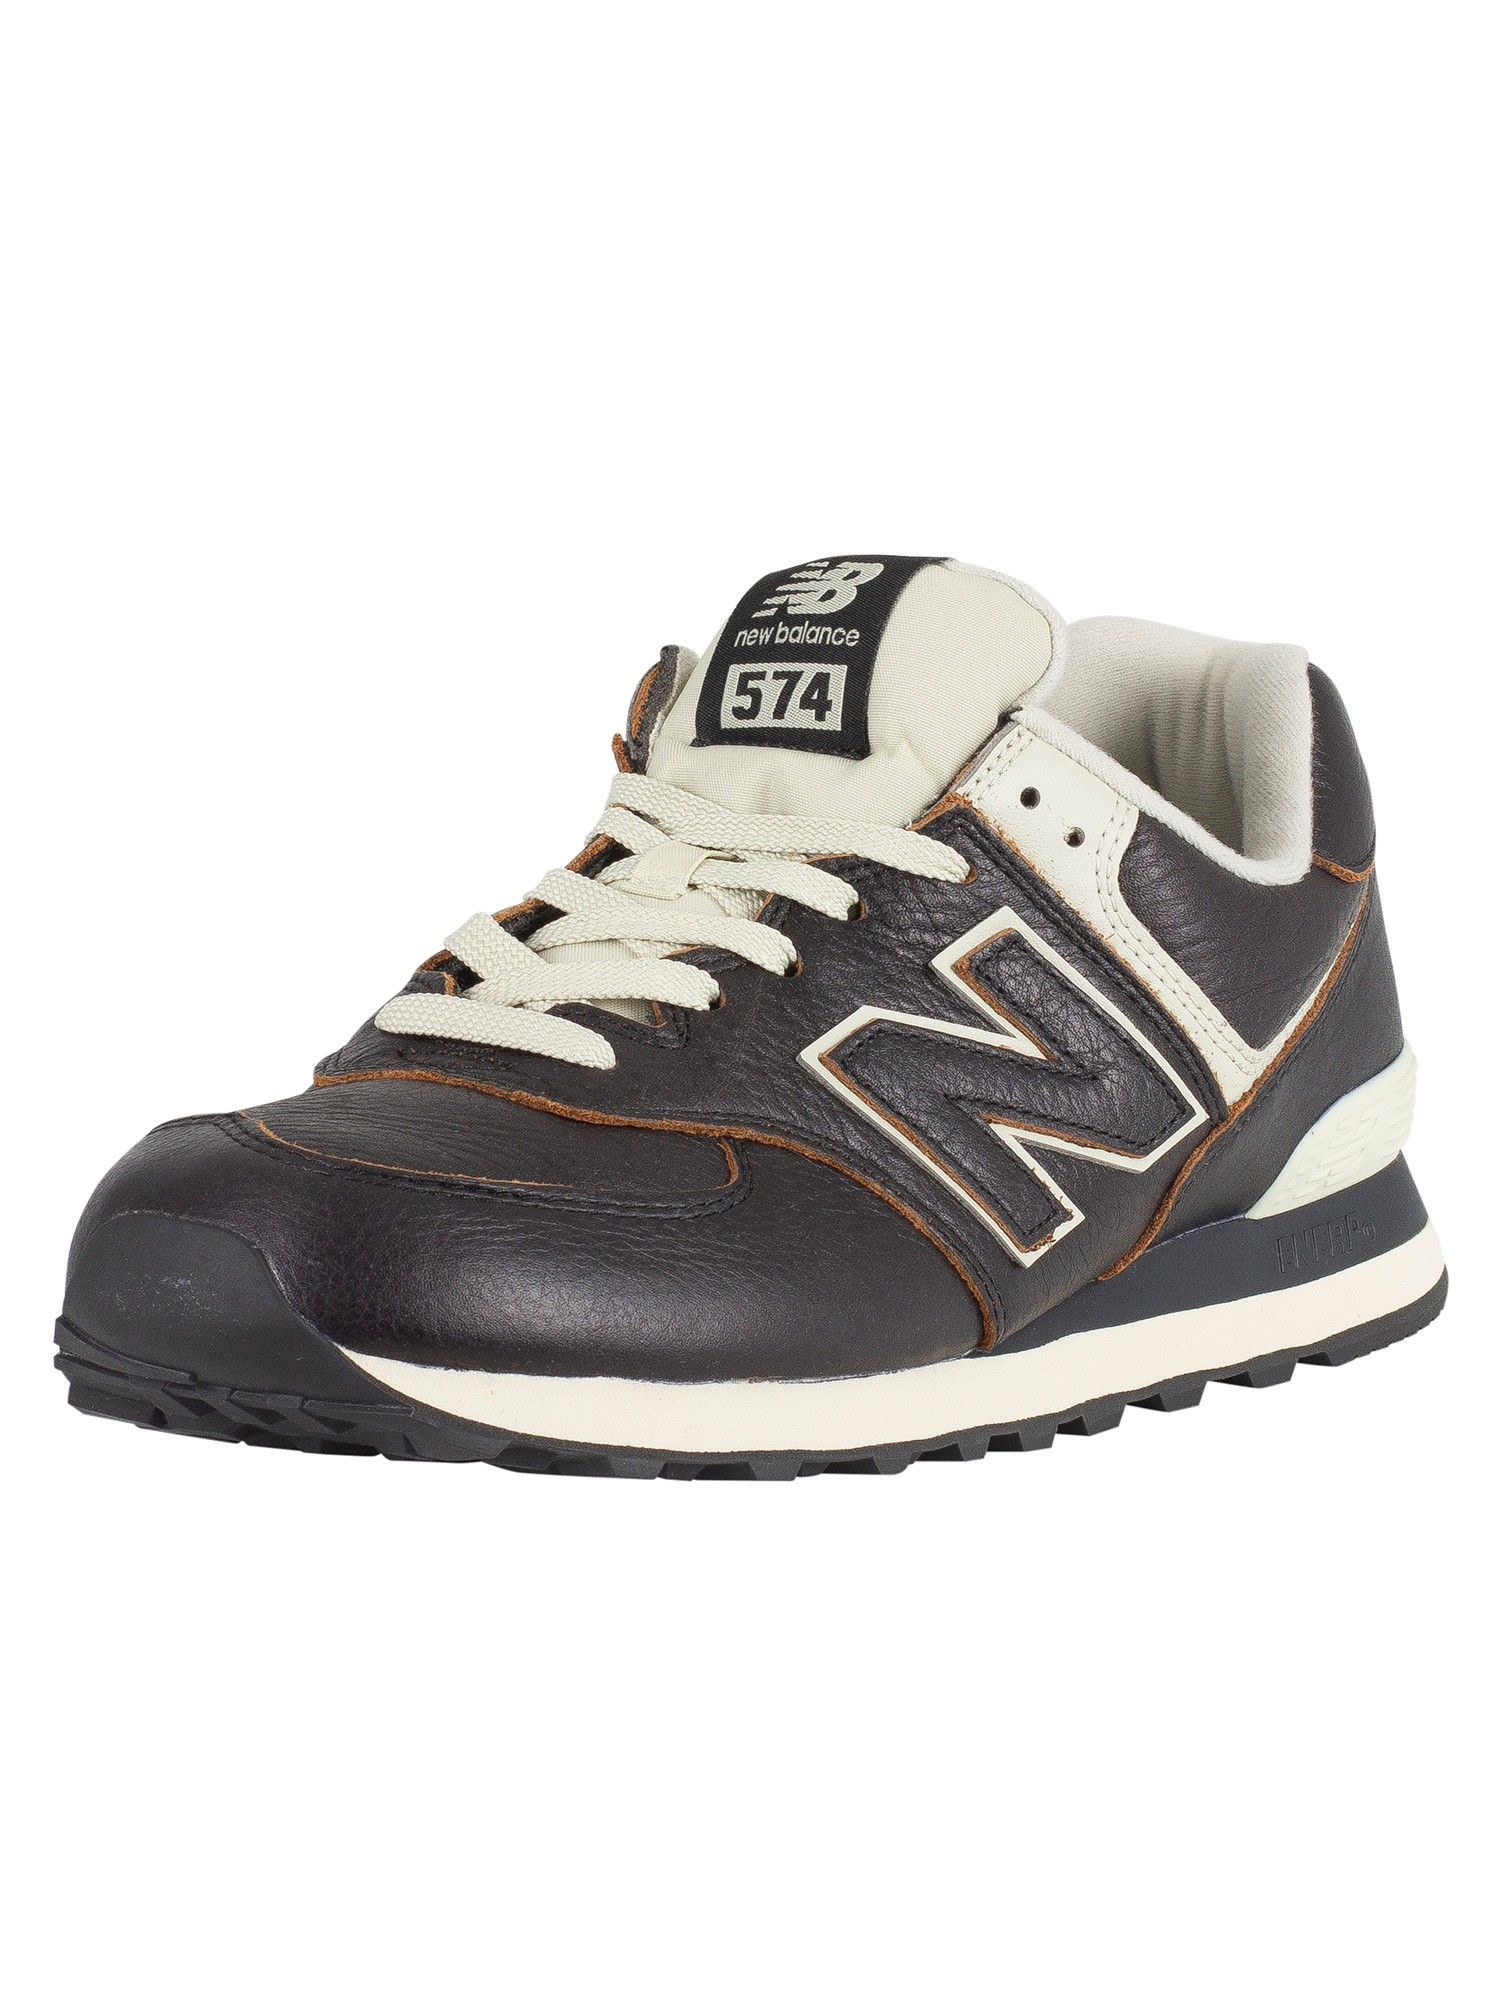 size 40 5307f 6ef77 New Balance 574 Leather Trainers - Black/White Munsell